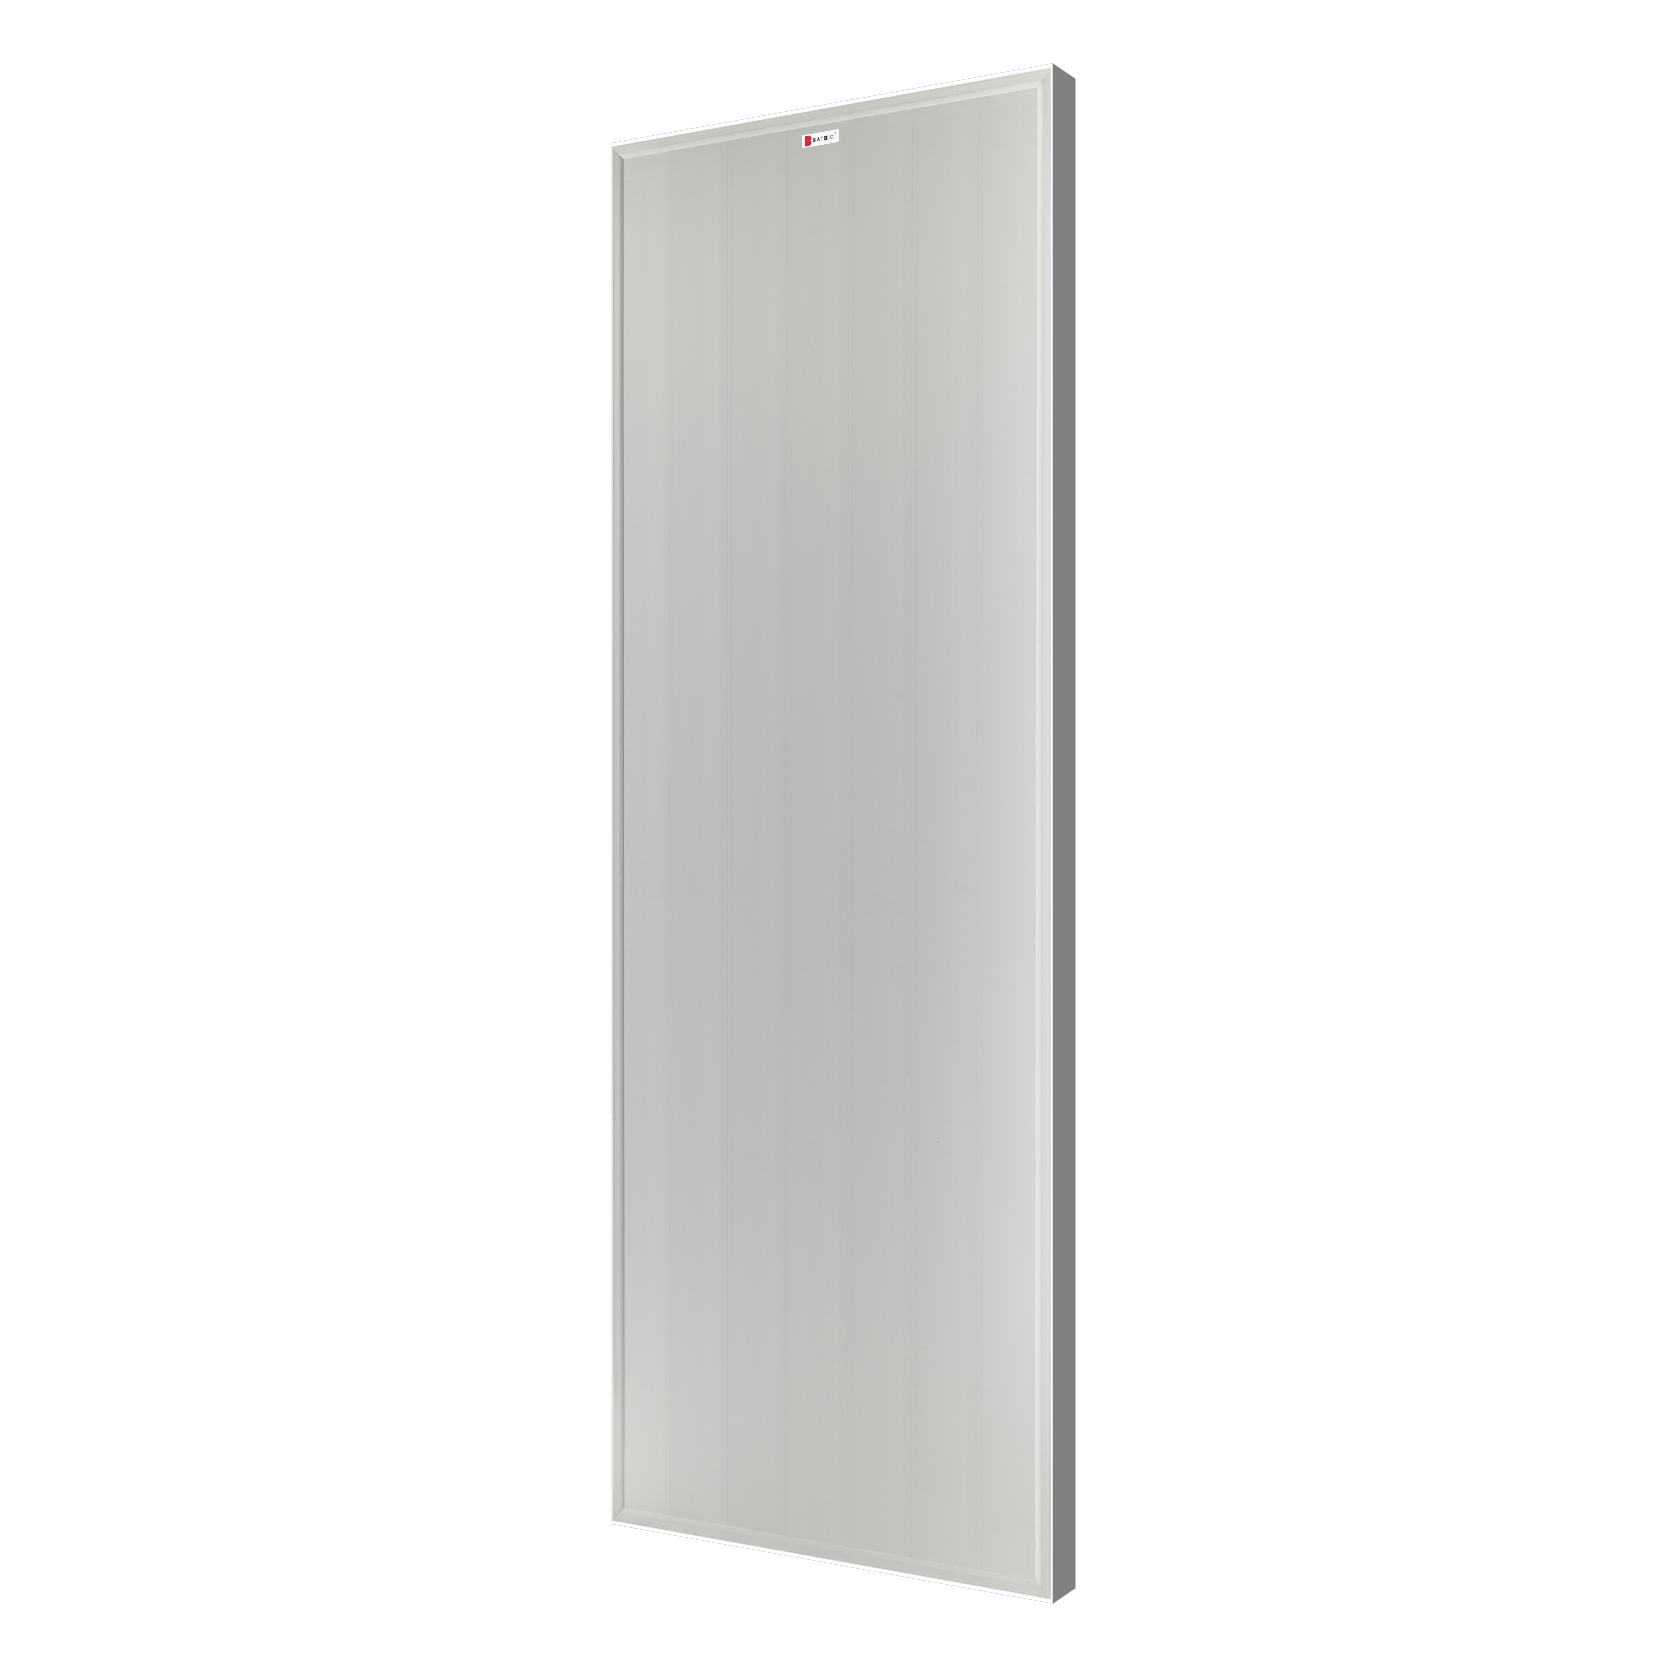 door-pvc-bathic-bs1-grey-2